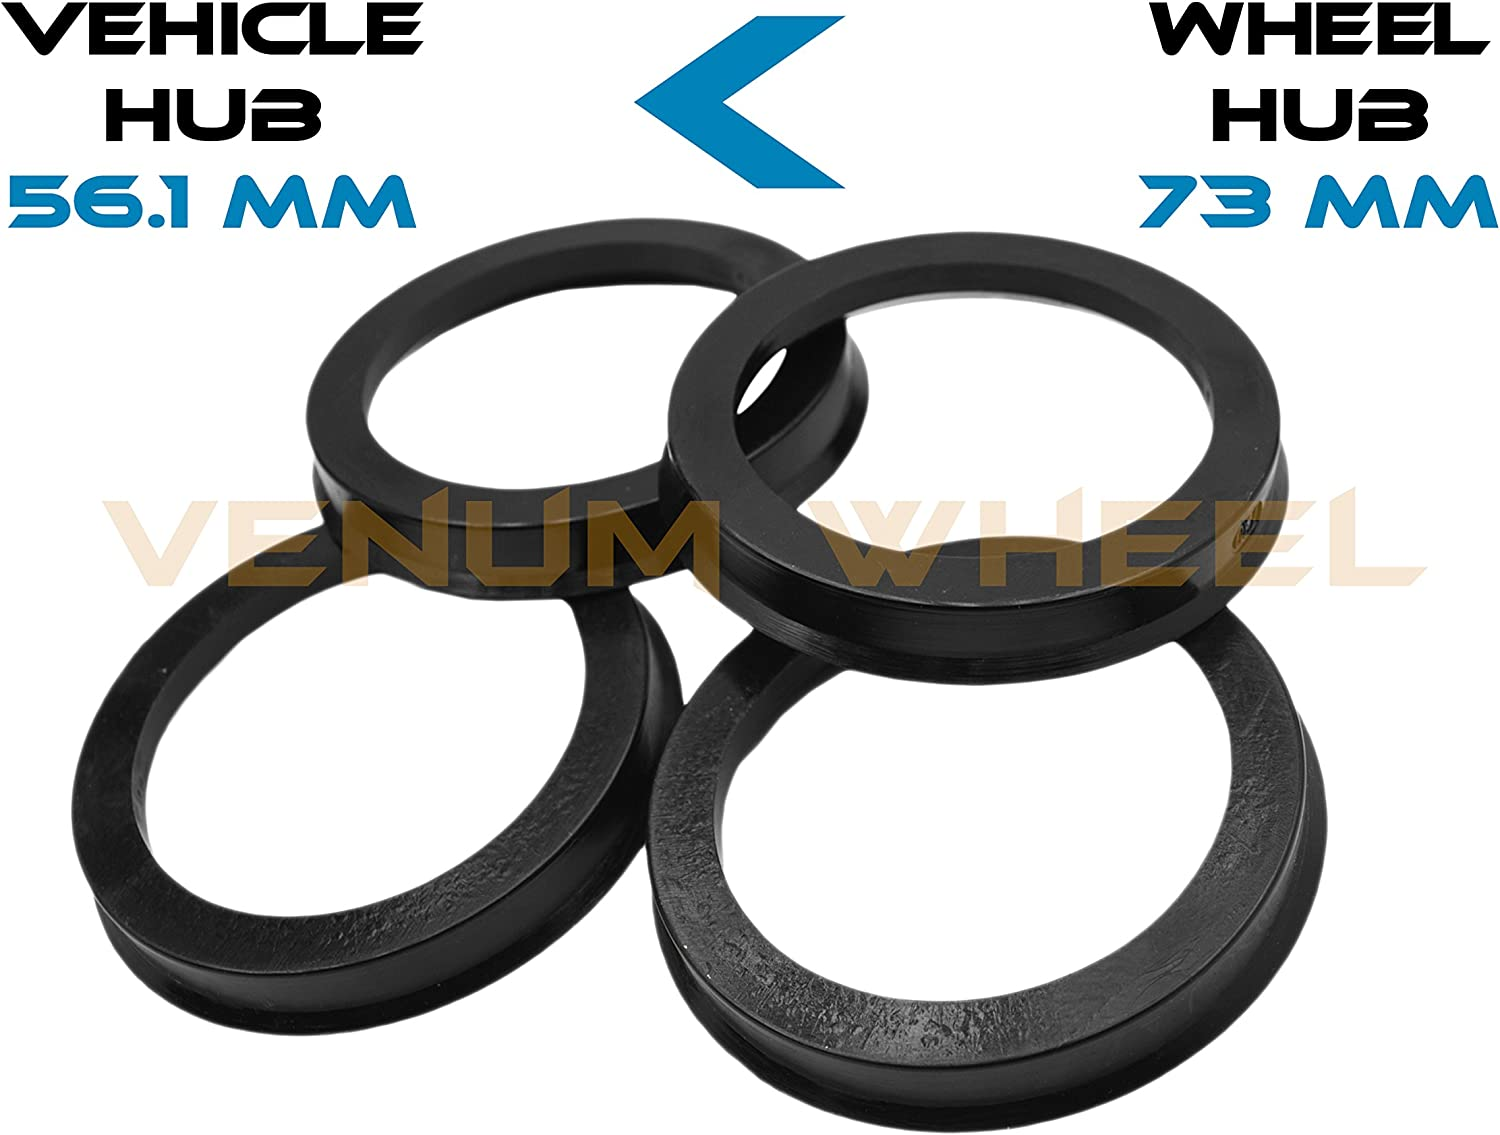 73.1mm OD to 63.4mm ID Circuit Performance Black Plastic Polycarbonate Hub Centric Rings